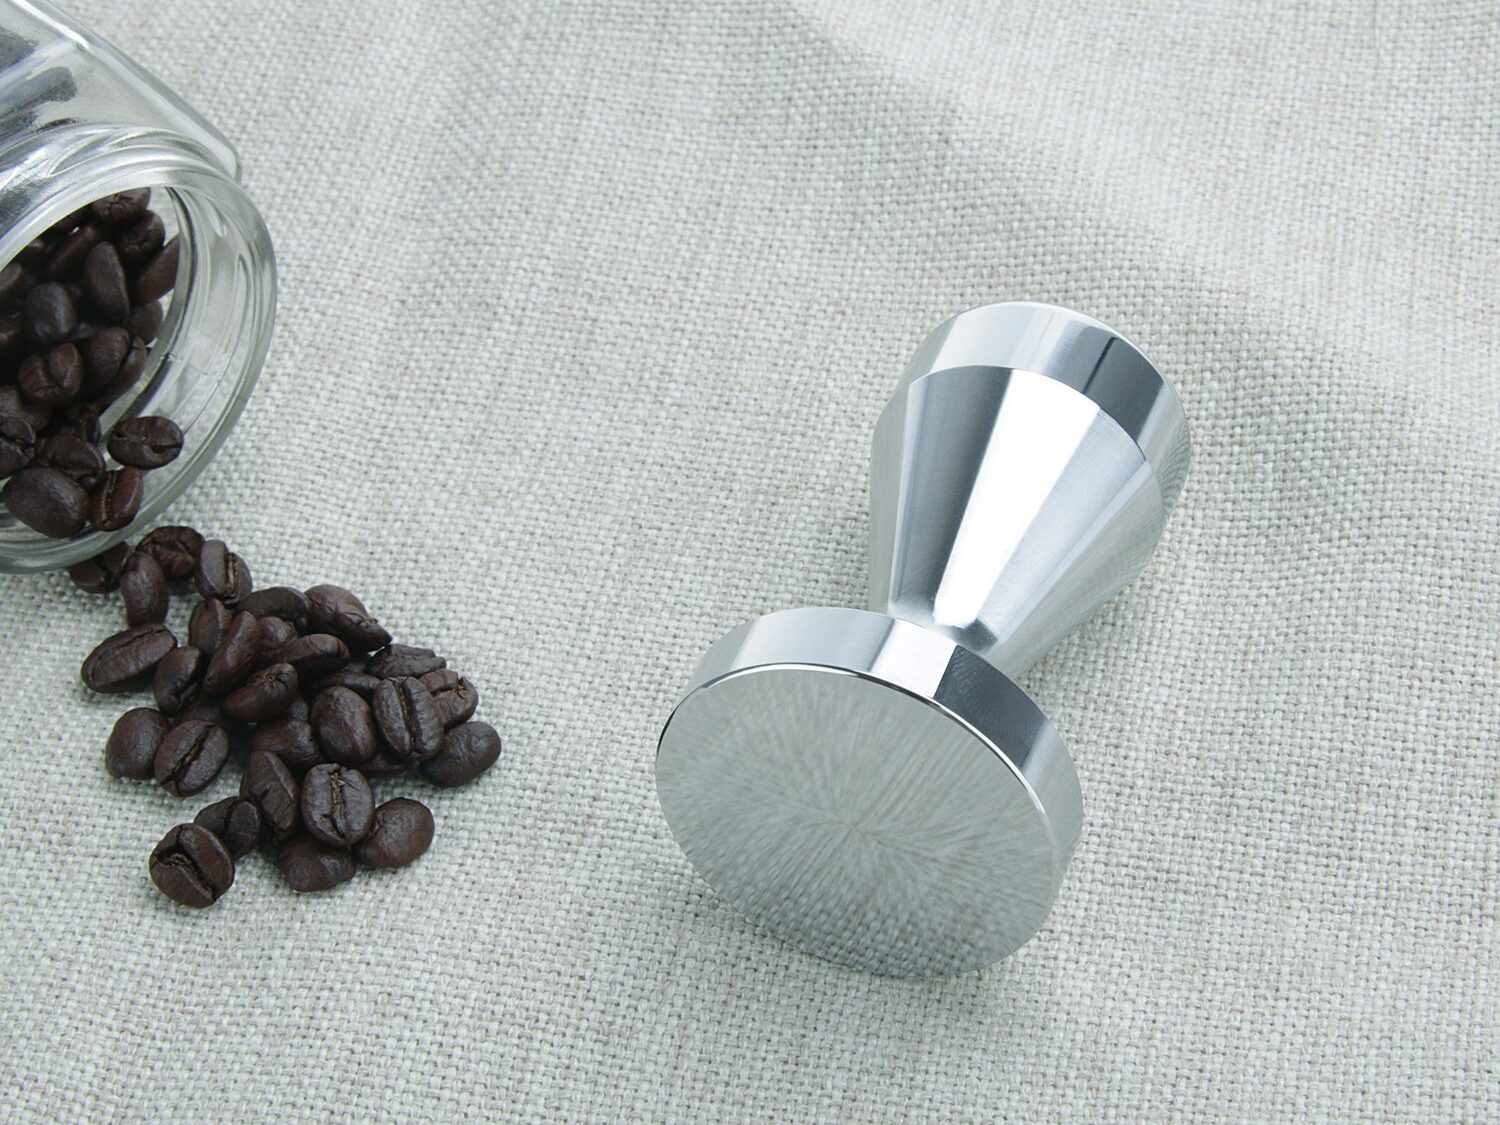 stainless steel used for coffee making and in kitchen products